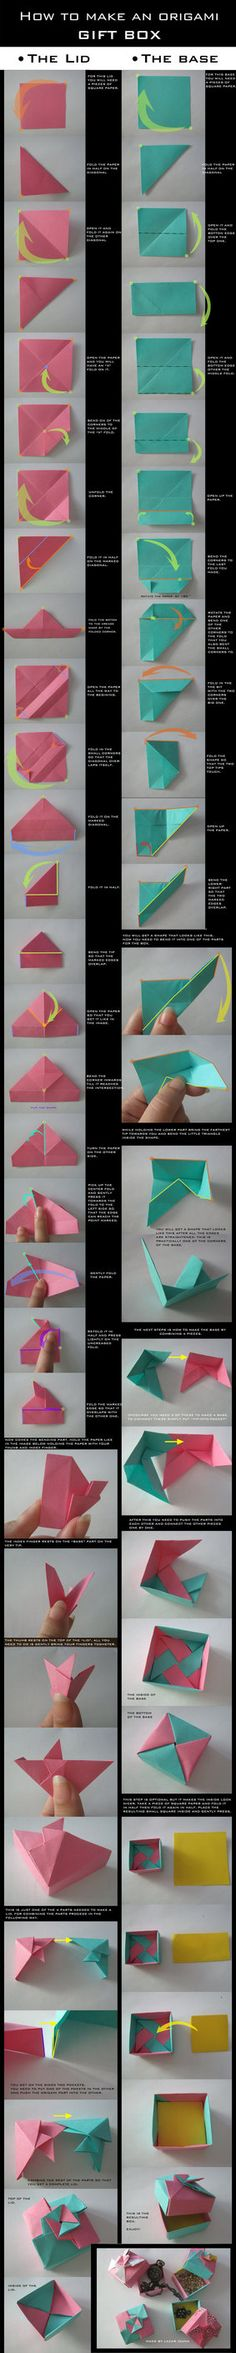 ideas gifts diy paper origami boxes for 2019 Origami Ball, Diy Origami, Origami Tutorial, Origami Gift Box, Origami And Kirigami, Paper Crafts Origami, Useful Origami, Diy Paper, Paper Art